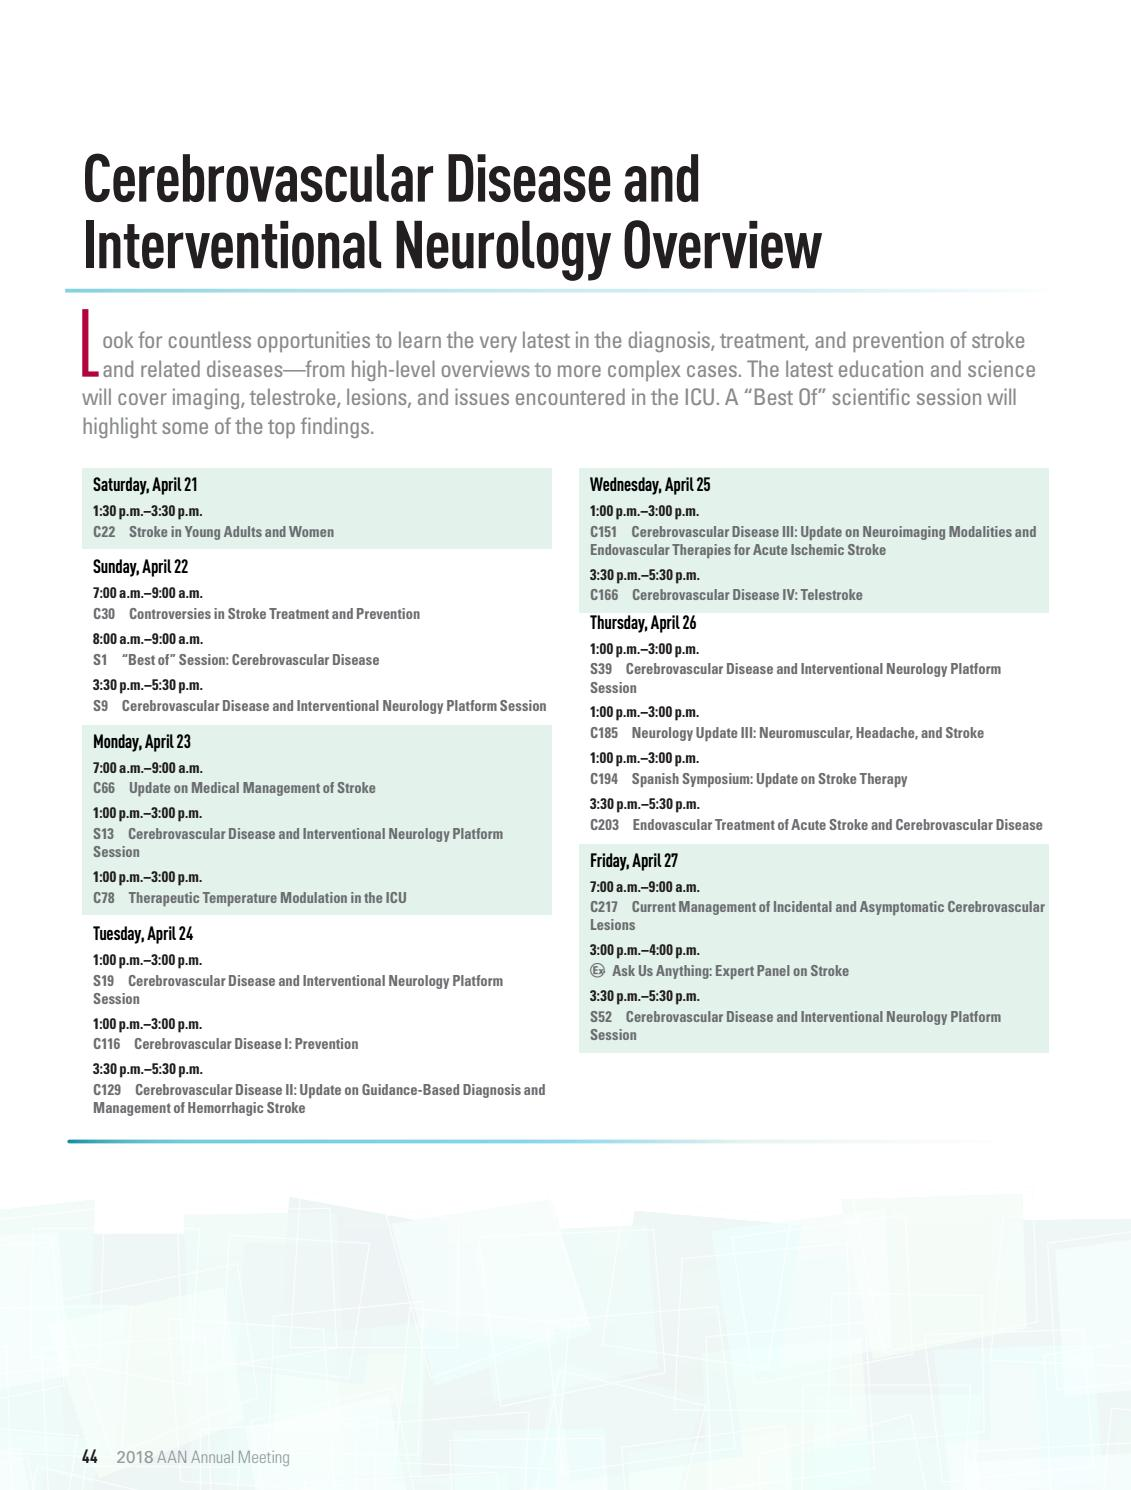 AAN 2018 Annual Meeting by American Academy of Neurology - issuu